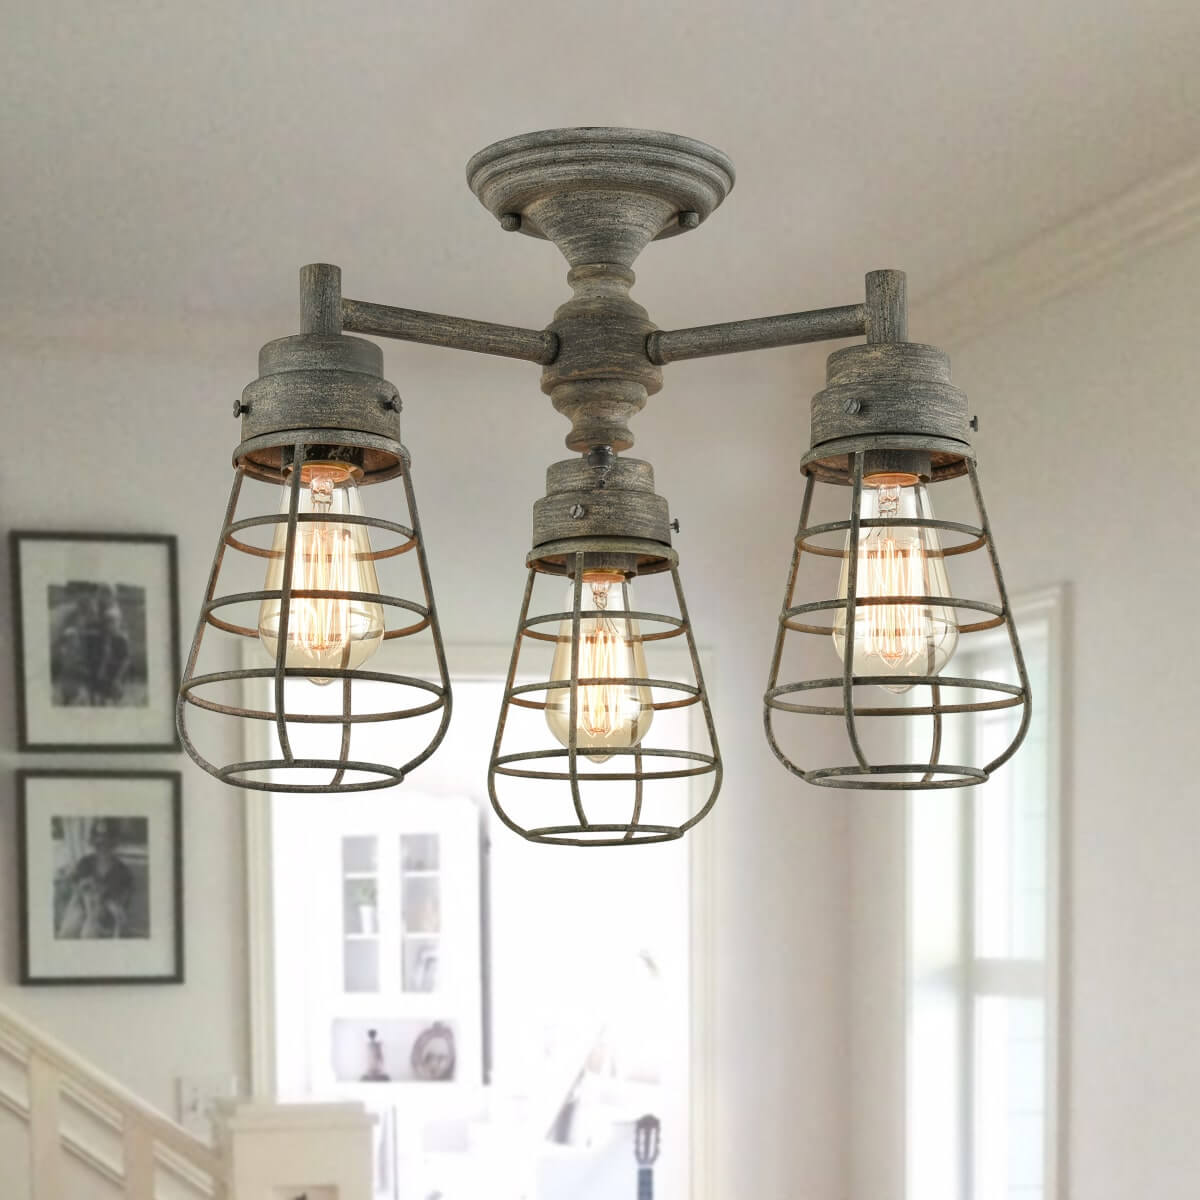 3 Light Cage Gray Rustic Semi Flush Ceiling Lights Fixture